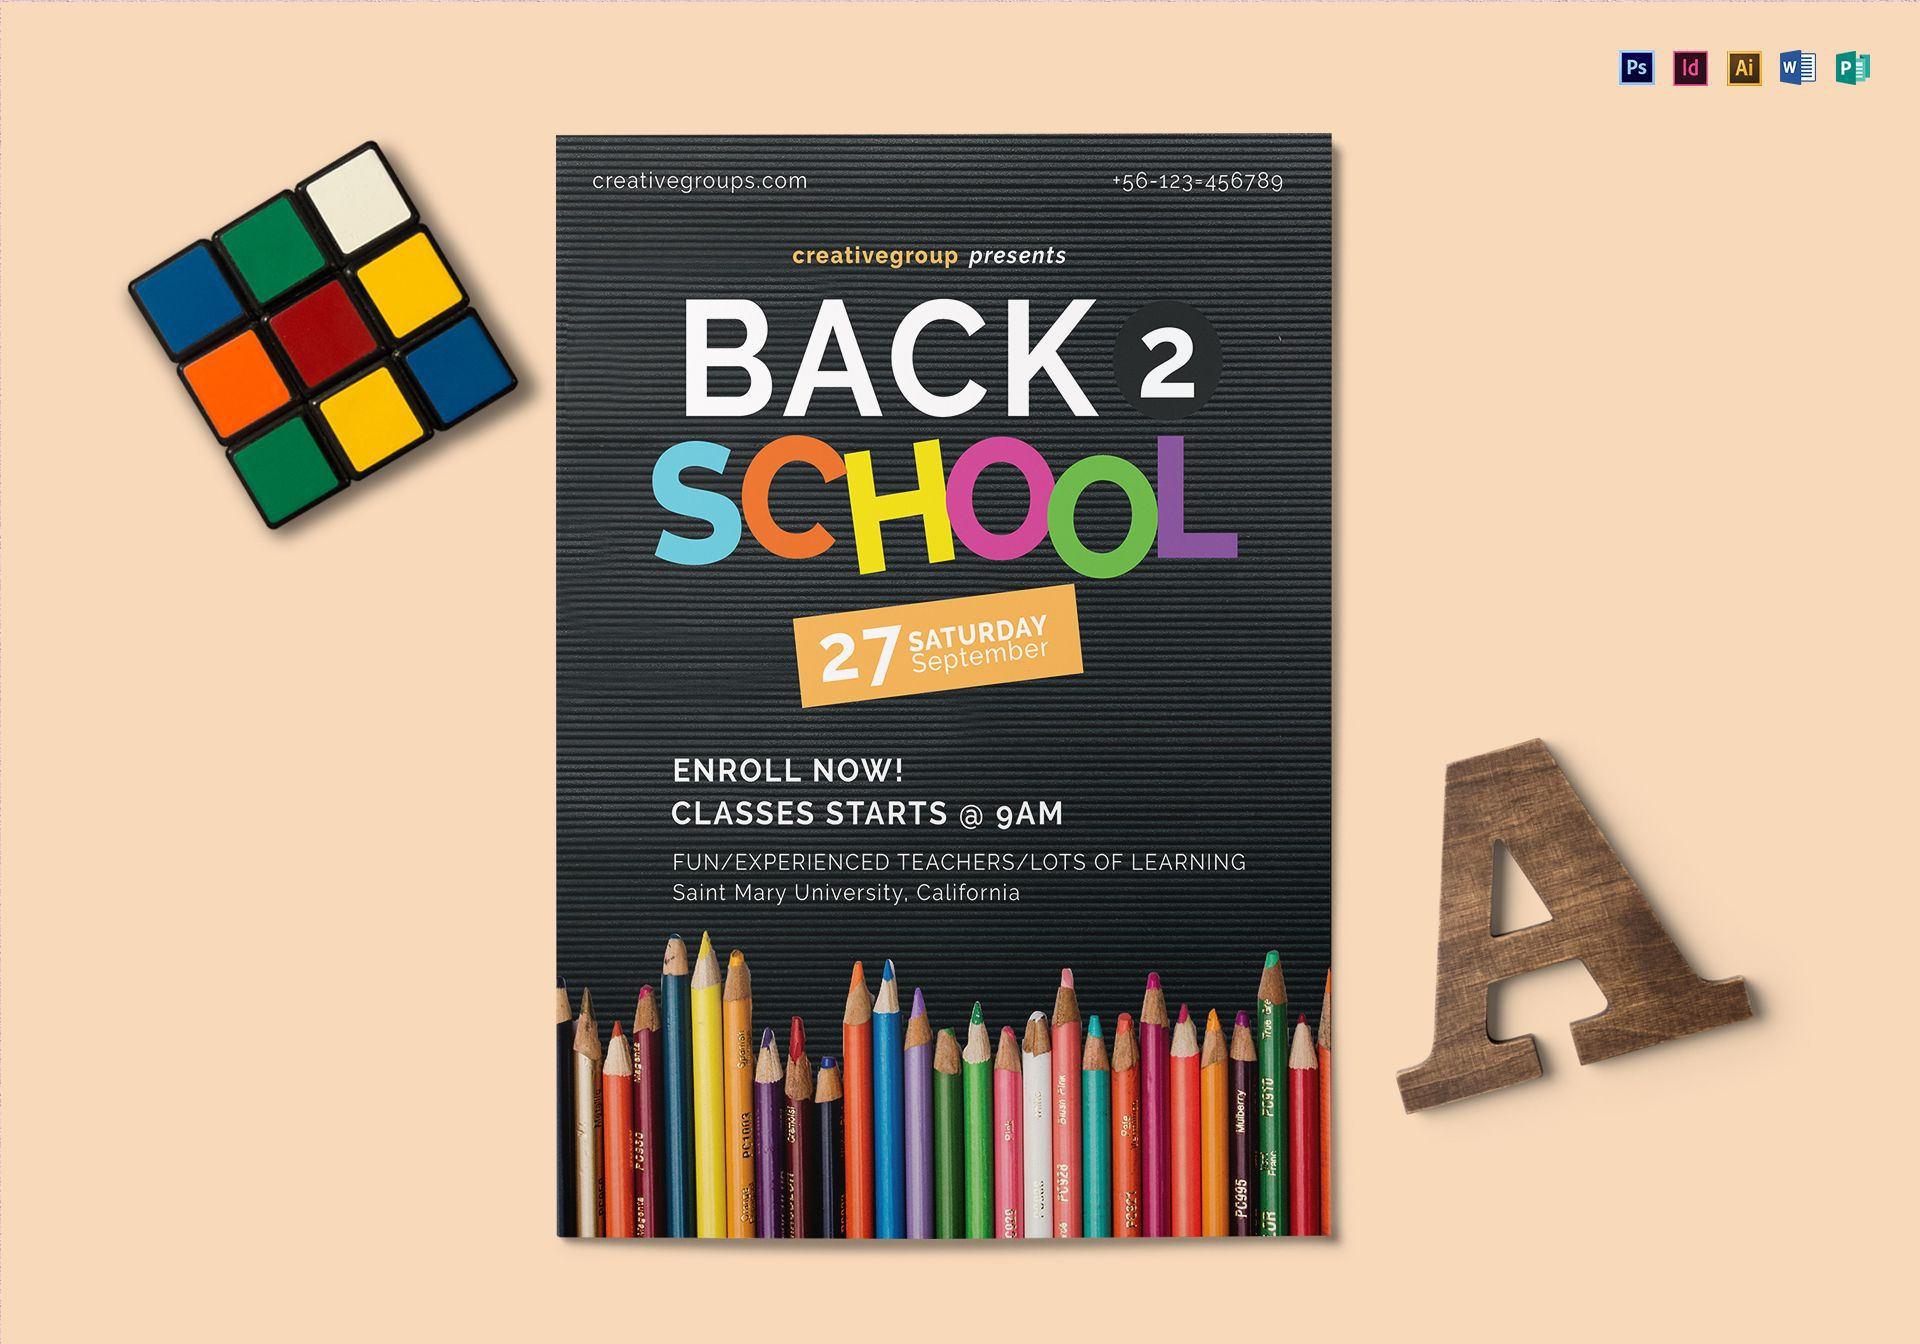 004 Remarkable Free School Event Flyer Template Example  TemplatesFull